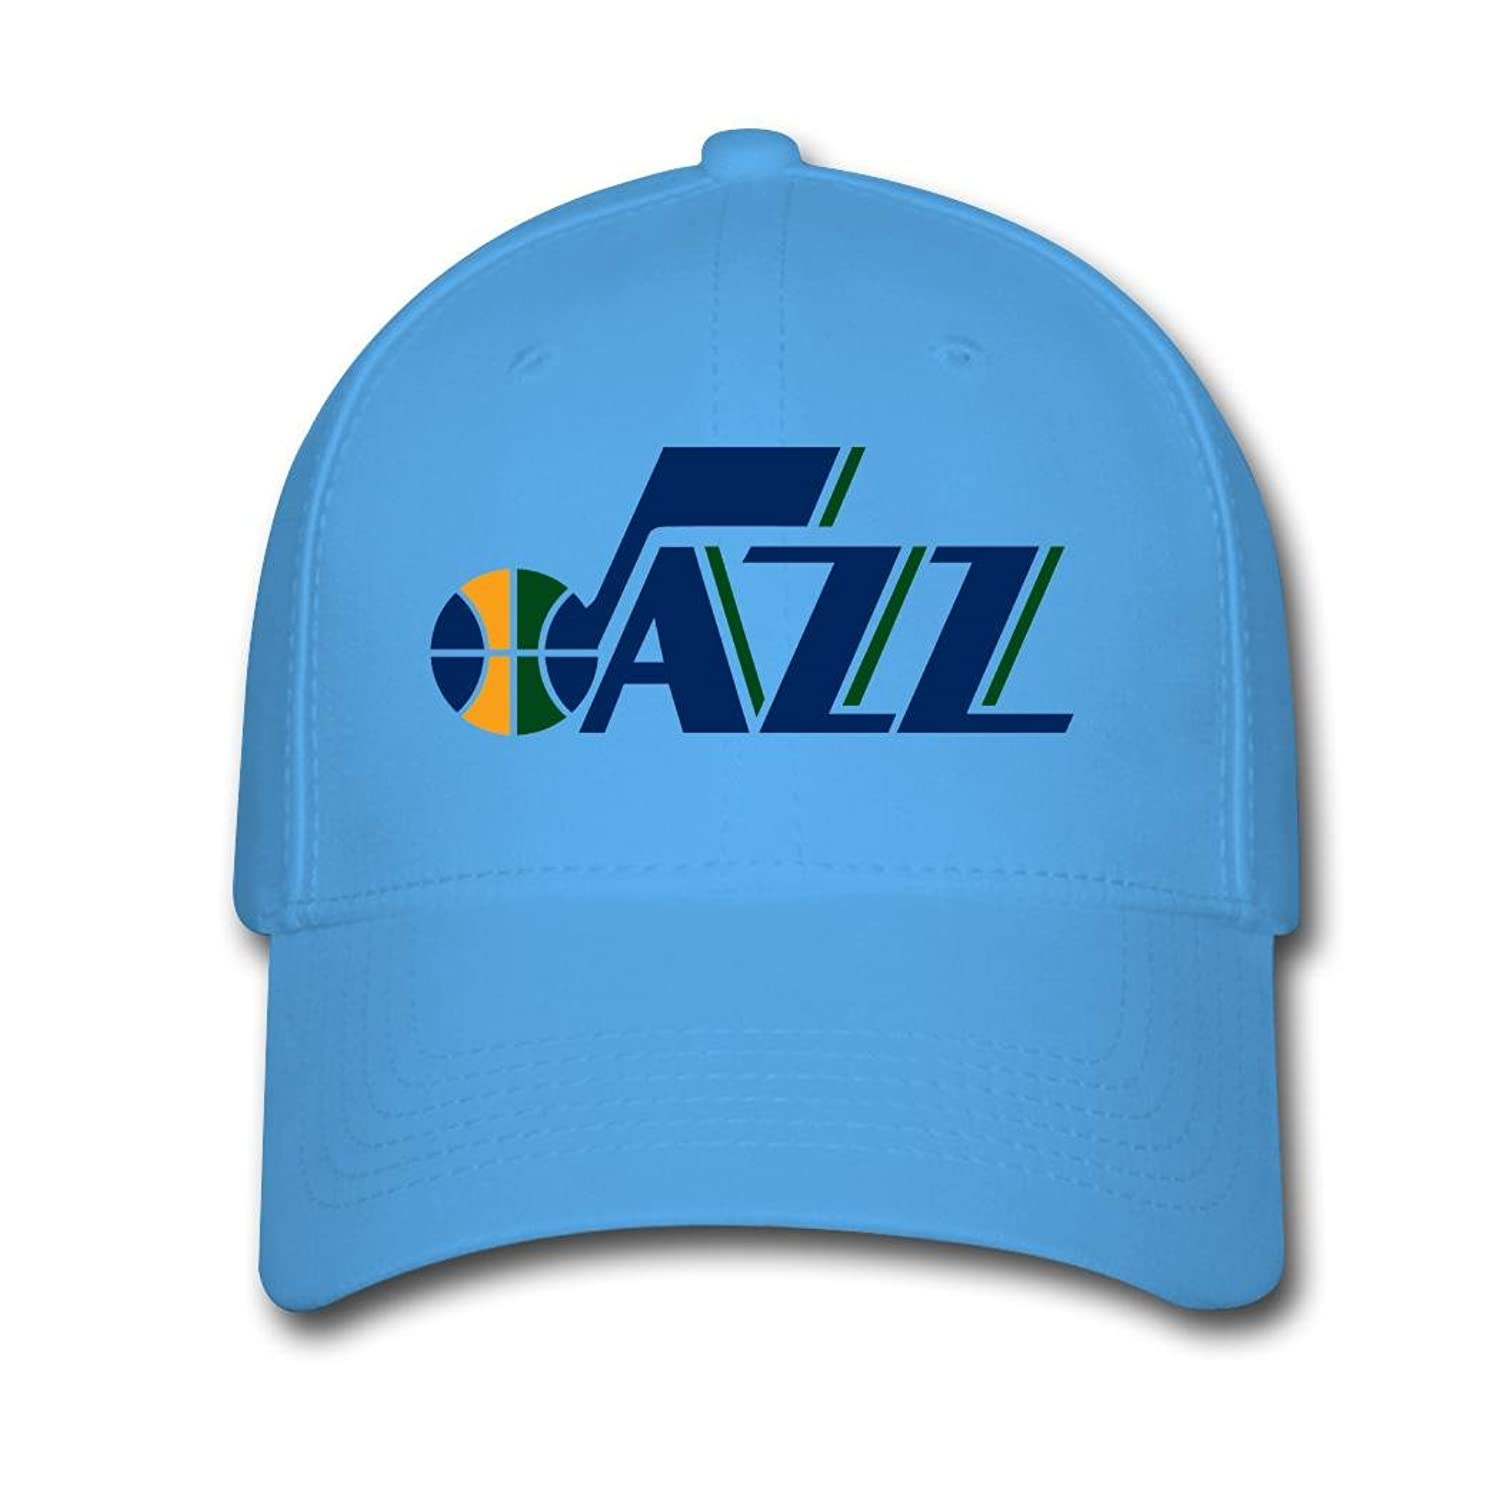 Morden Fashion Adjustable Hats Baseball Cap For Men and Women Washington Wizards Symbol